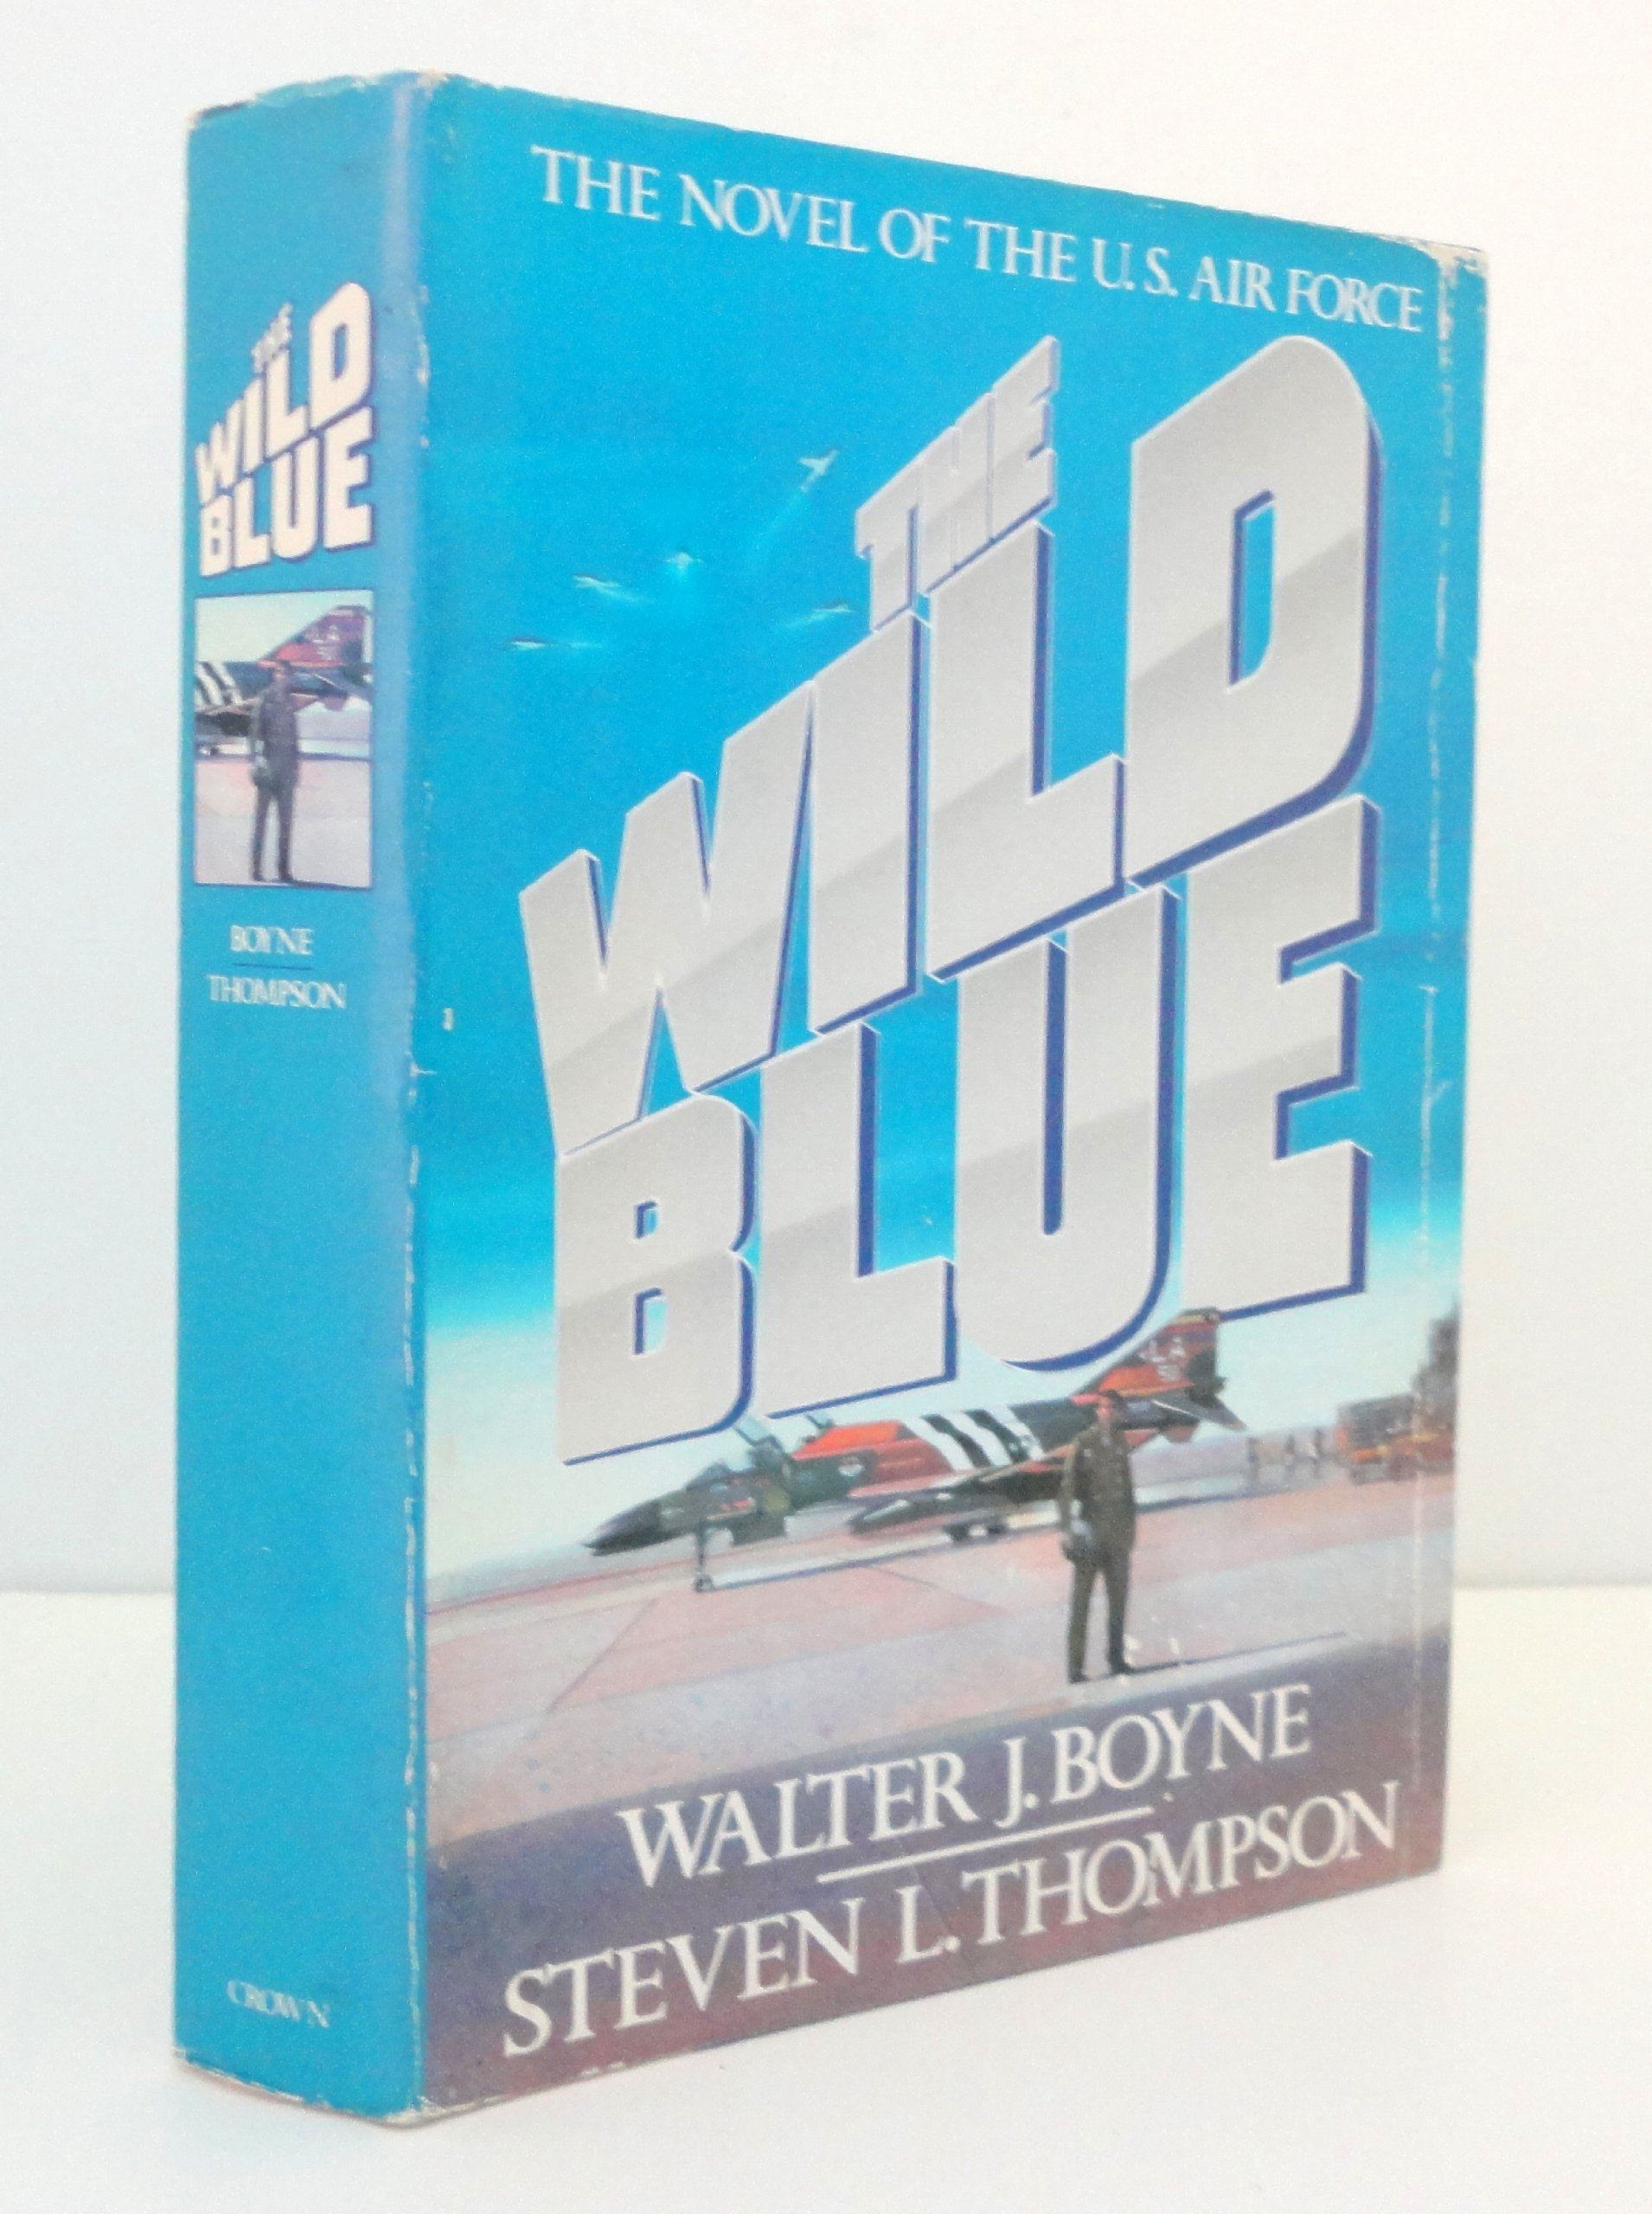 The Wild Blue: The Novel of the U.S. Air Force, Walter J. Boyne; Steven L. Thompson